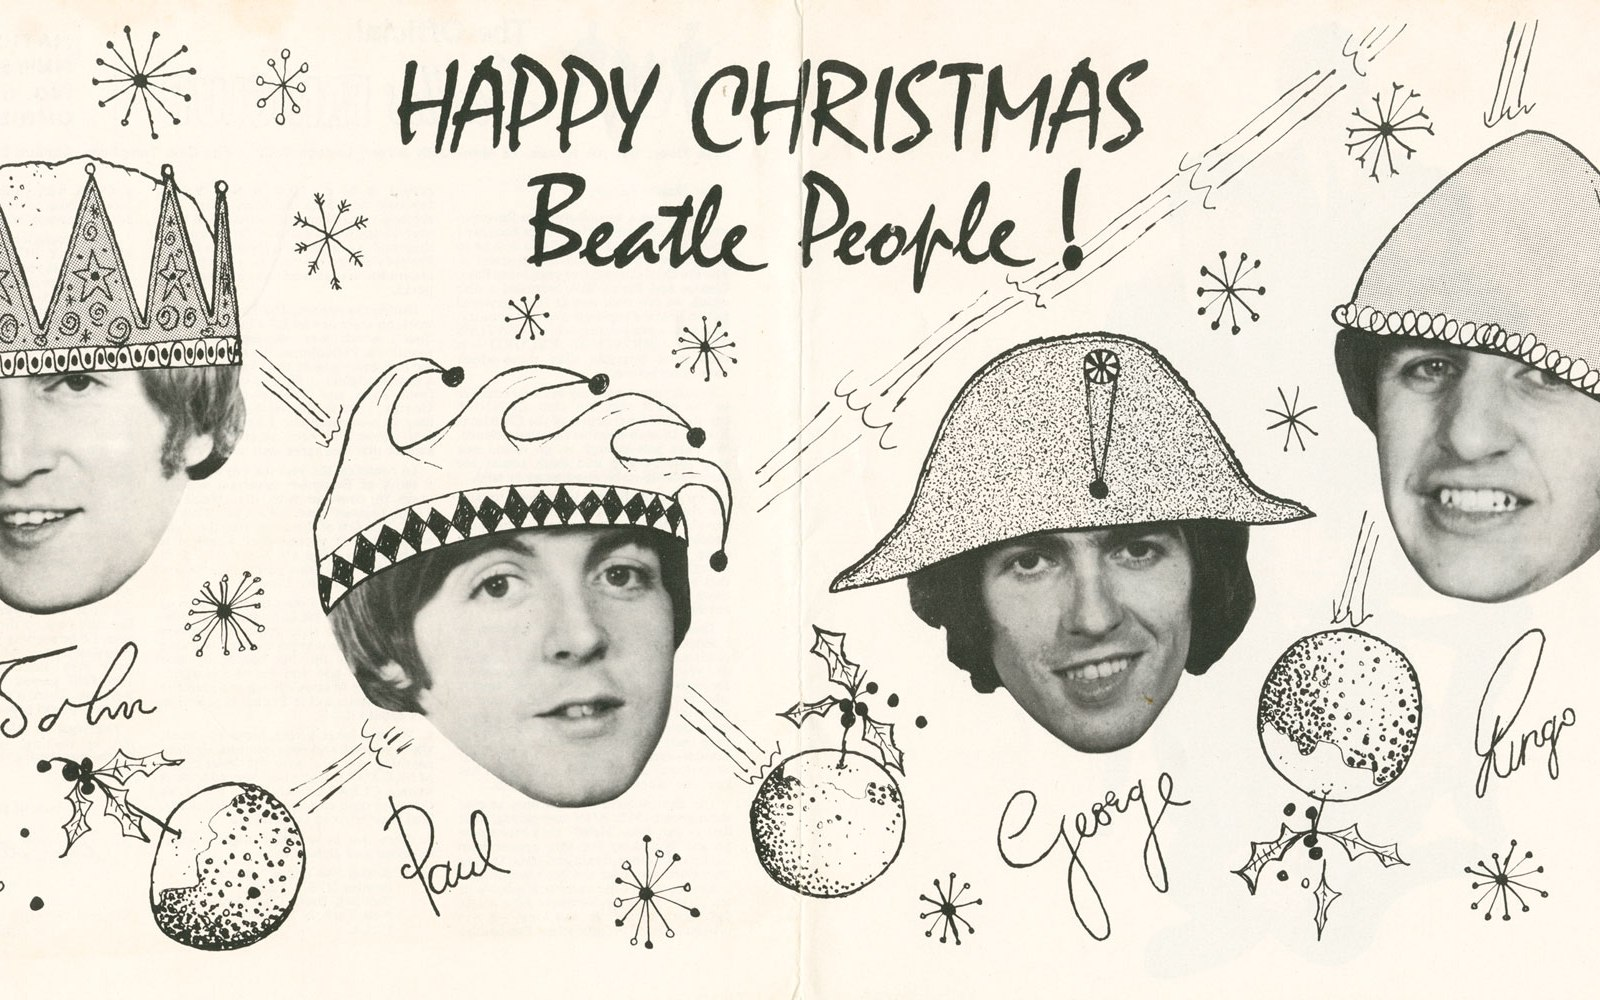 Report reiterates Beatles catalog streaming from Christmas Eve, will include Apple Music & others [U: Now official]